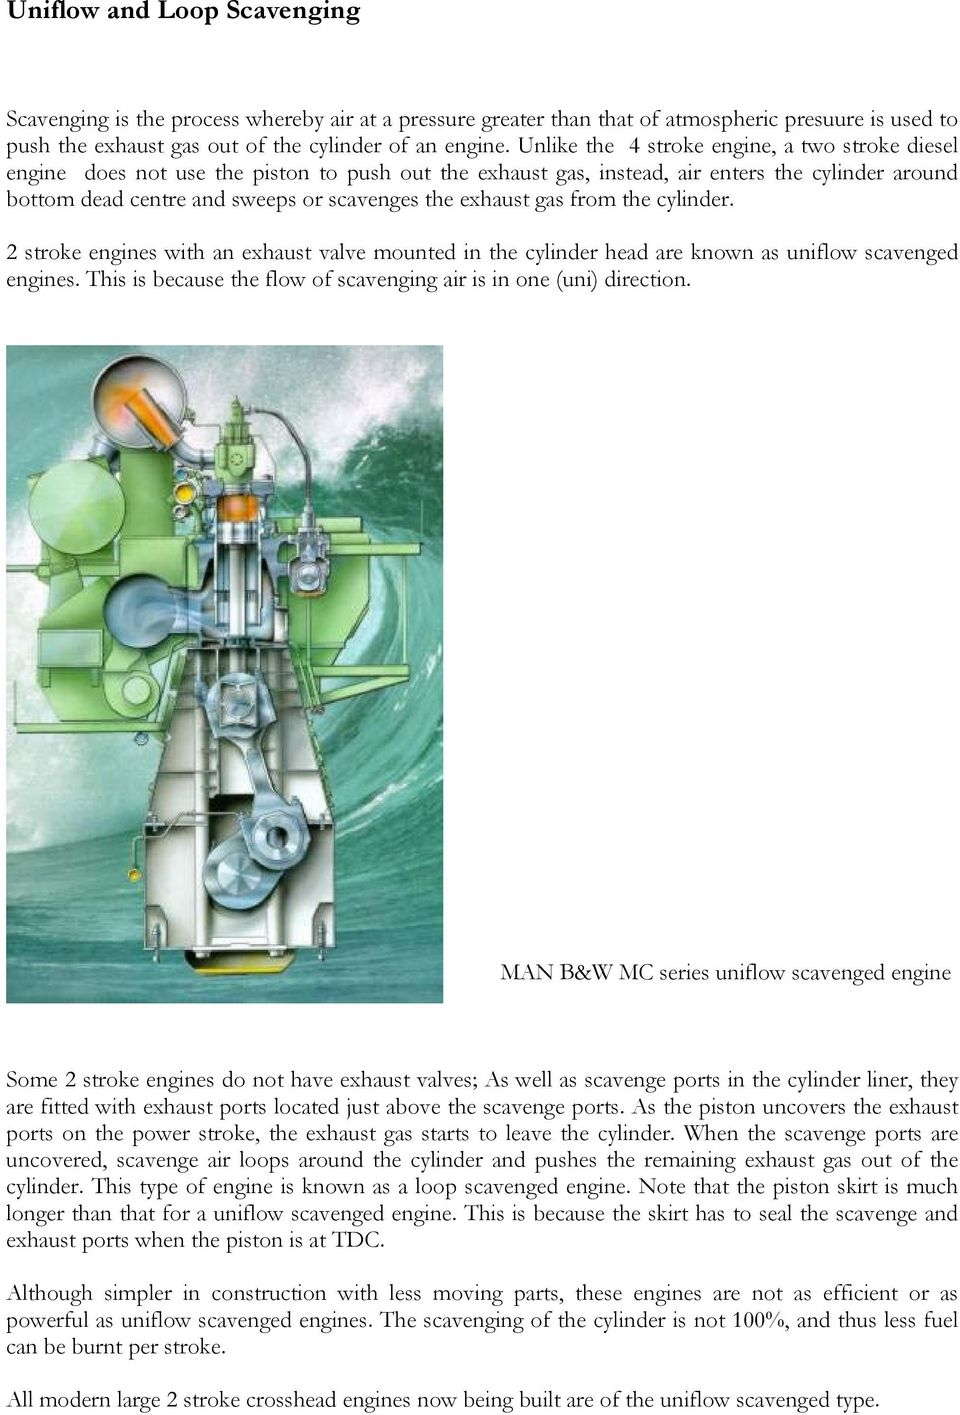 2 stroke engines with an exhaust valve mounted in the